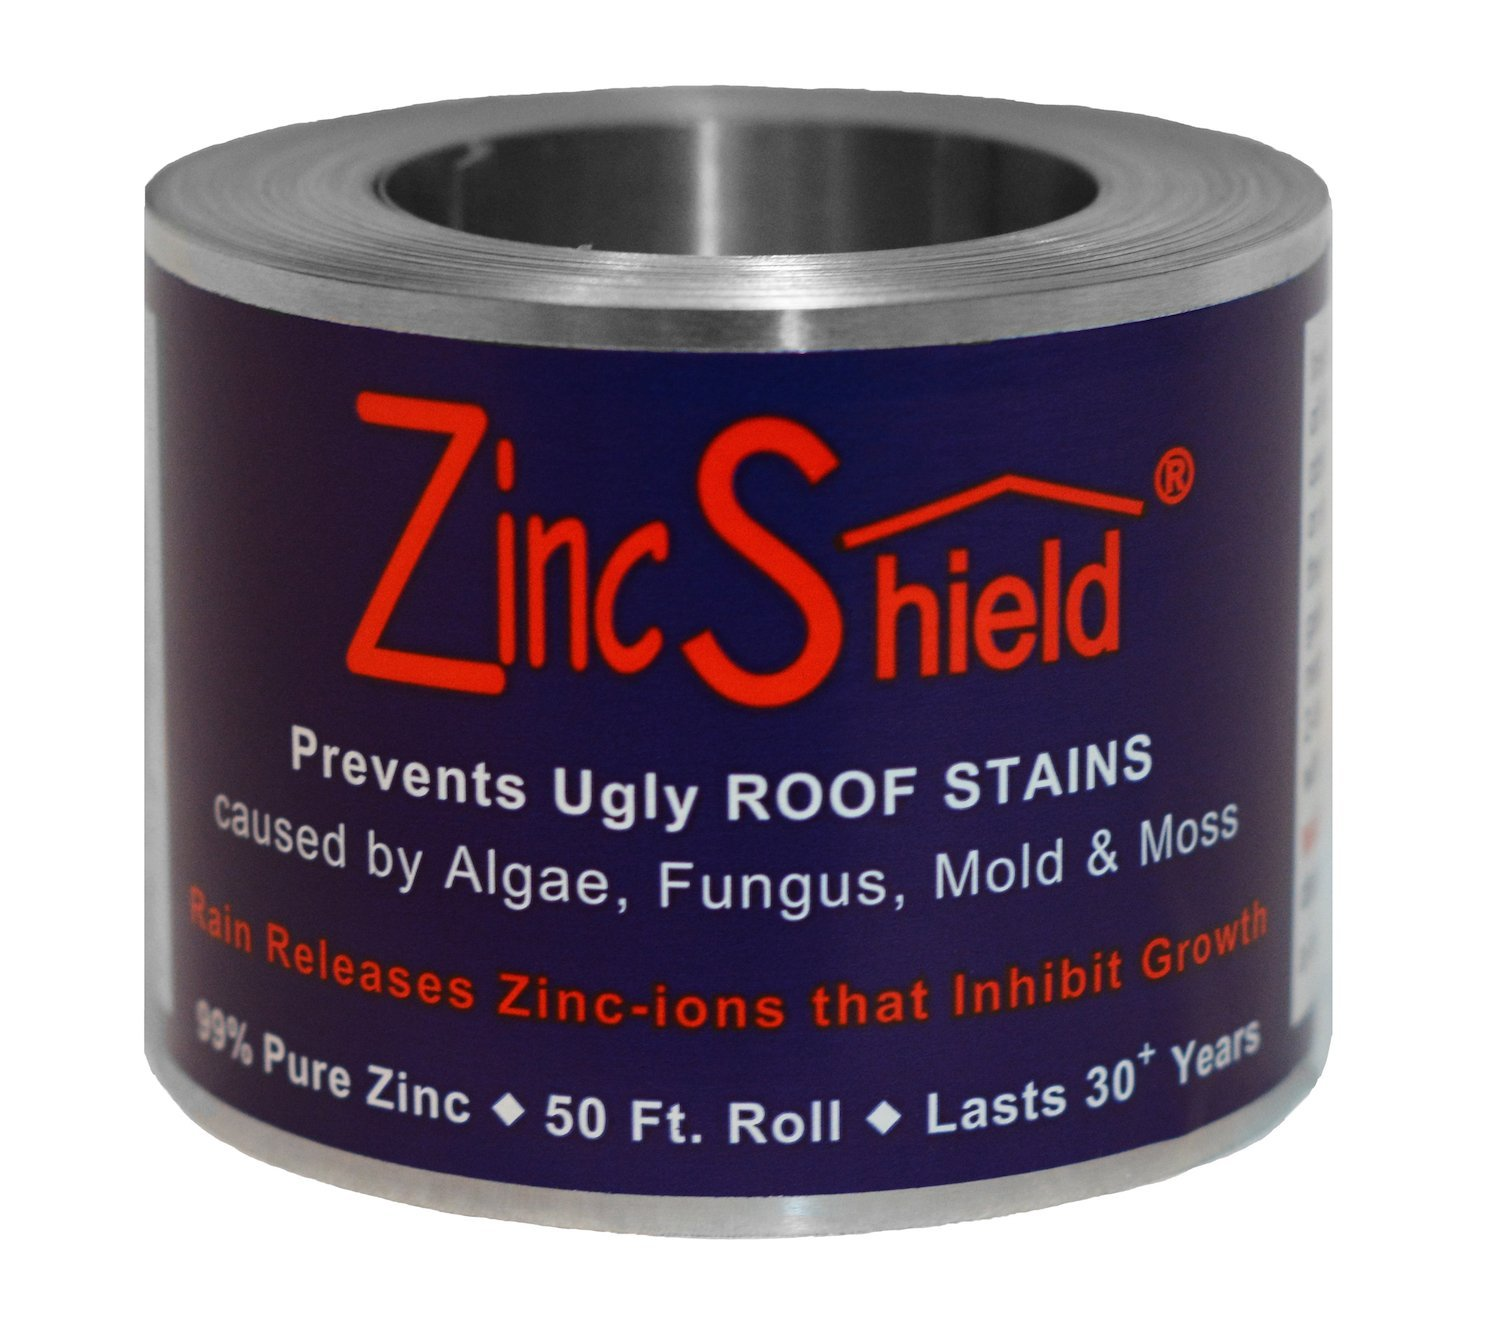 ZincShield Nail Set - Includes (2) x 2.5'' 50 Ft. Roll & (2) x Bag of Nails Installation Kit to Avoid Ugly Roof Stains from Moss, Algae, Fungus, and Mildew - Made in the USA